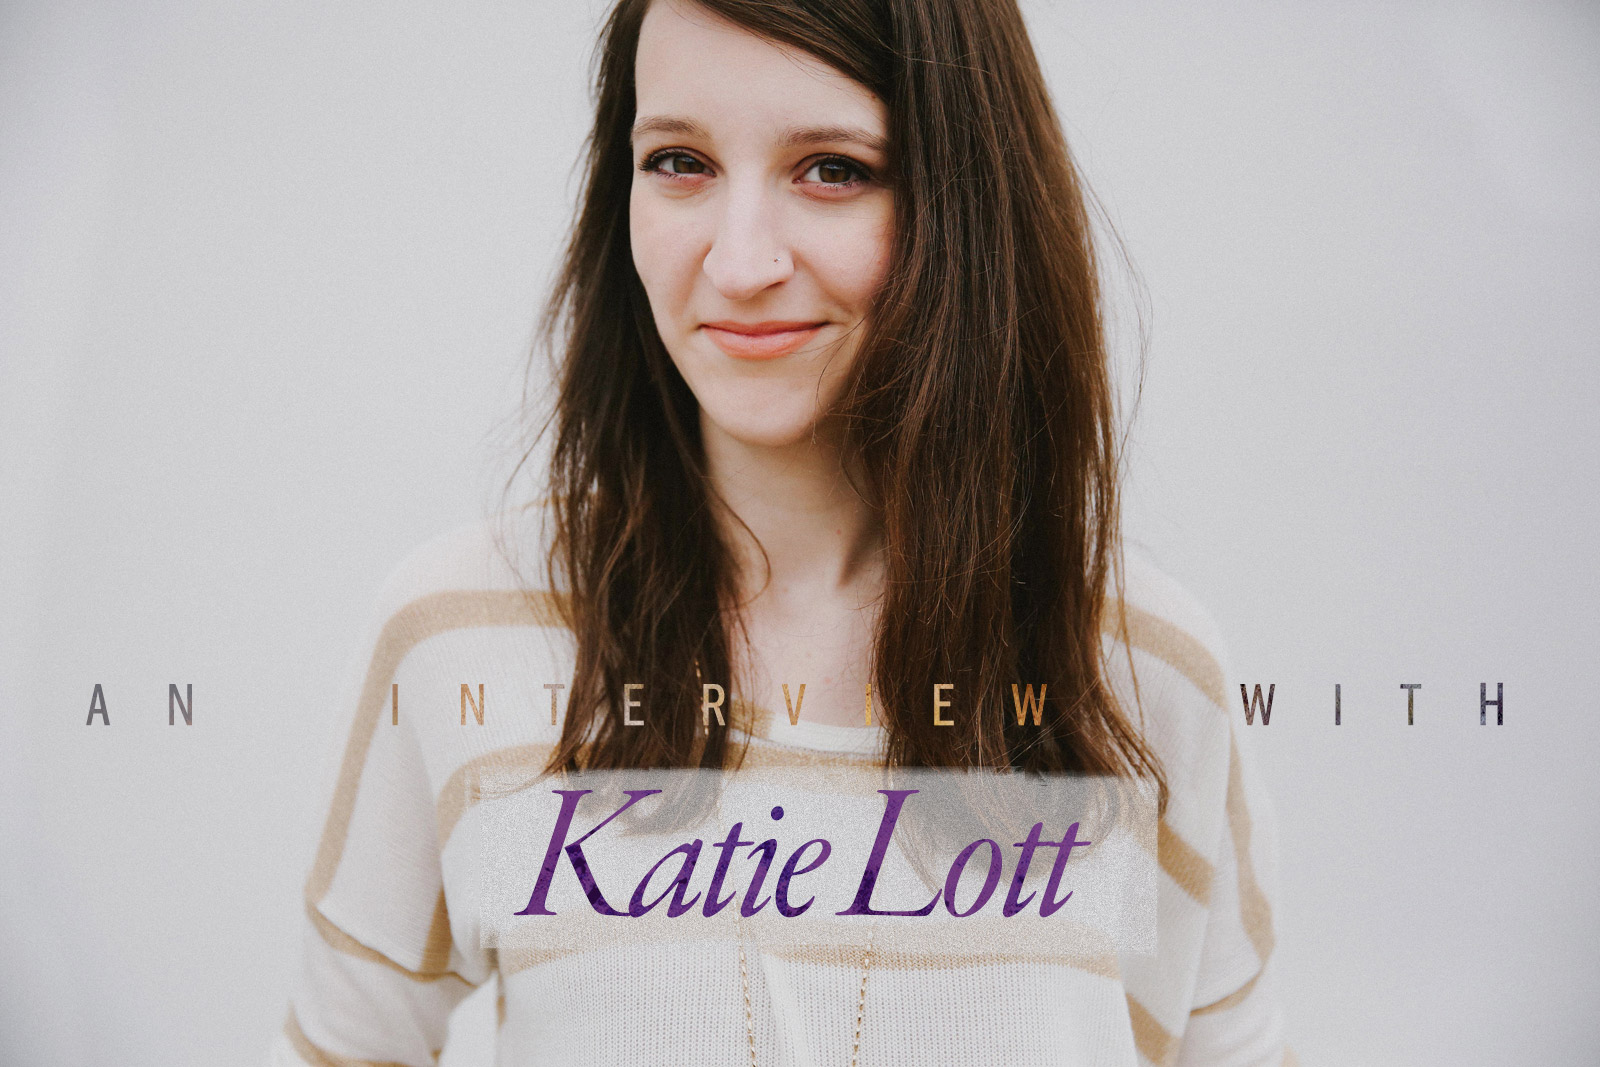 an-interview-with-katie-lott-singer-songwriter-piano-pop